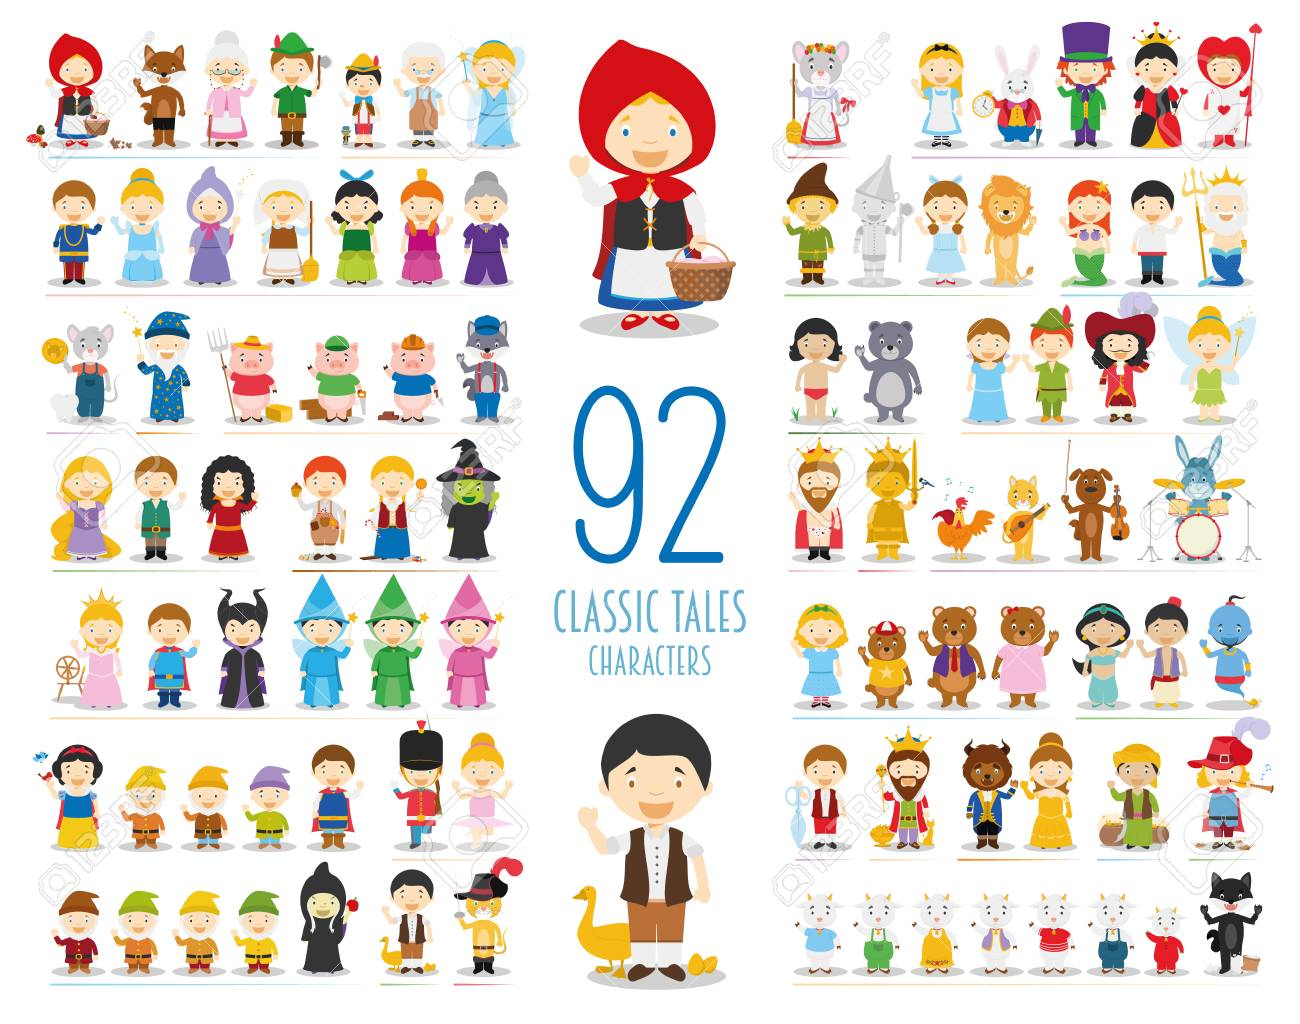 Kids Vector Characters Collection: Set of 92 Classic Tales Characters in cartoon style - 92429253